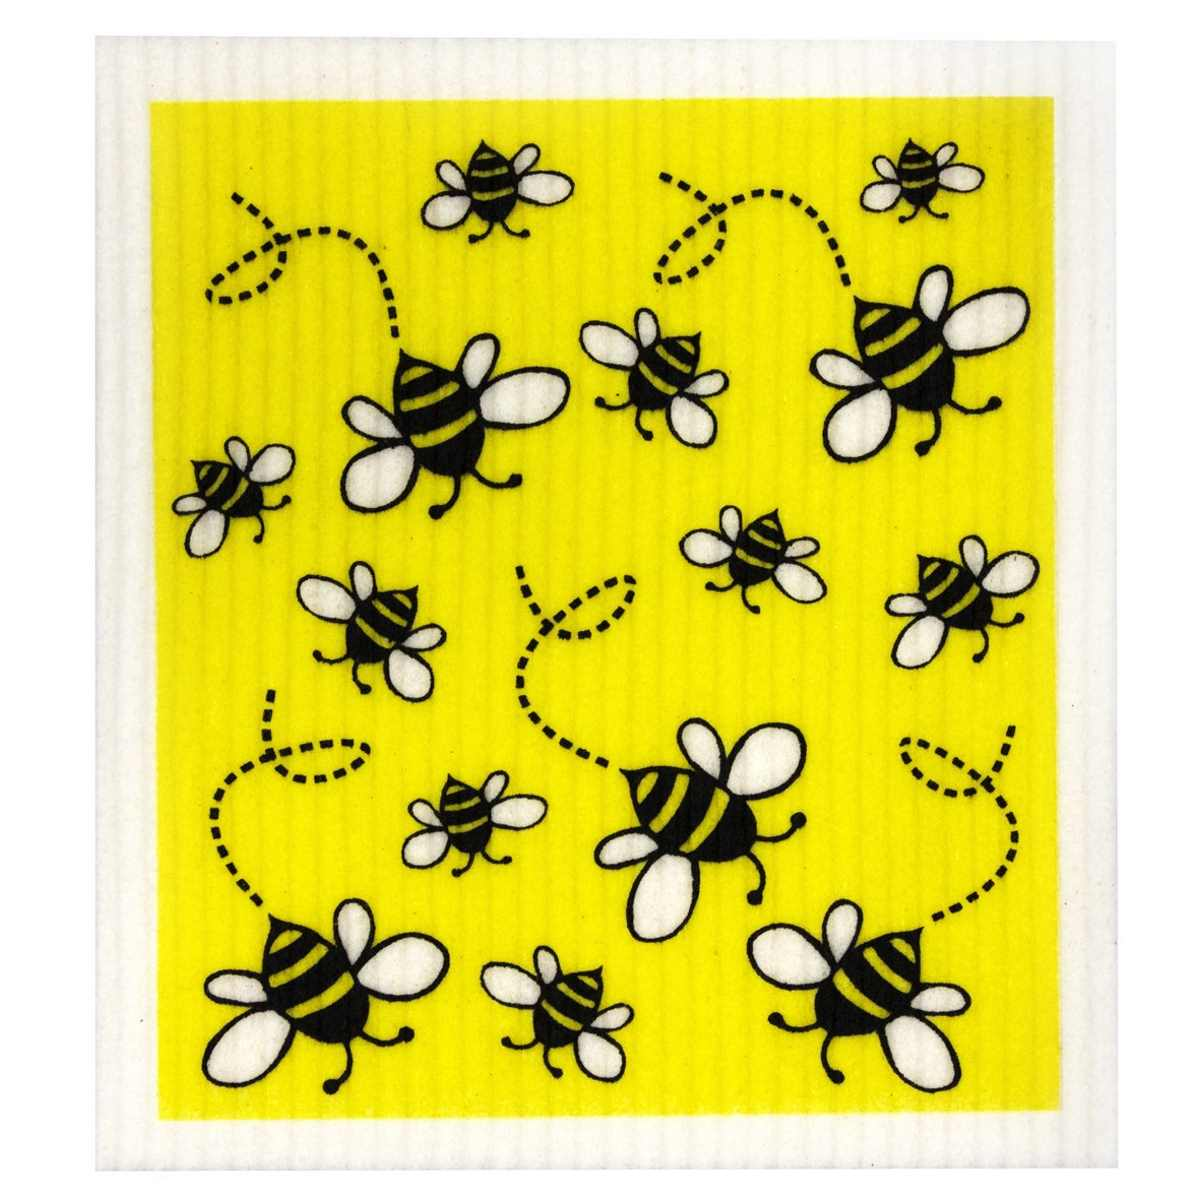 Biodegradable Dish Sponge Cloth - Bees - Eco Cleaning Cloth - Throw Some Seeds - Australian gardening gifts and eco products online!